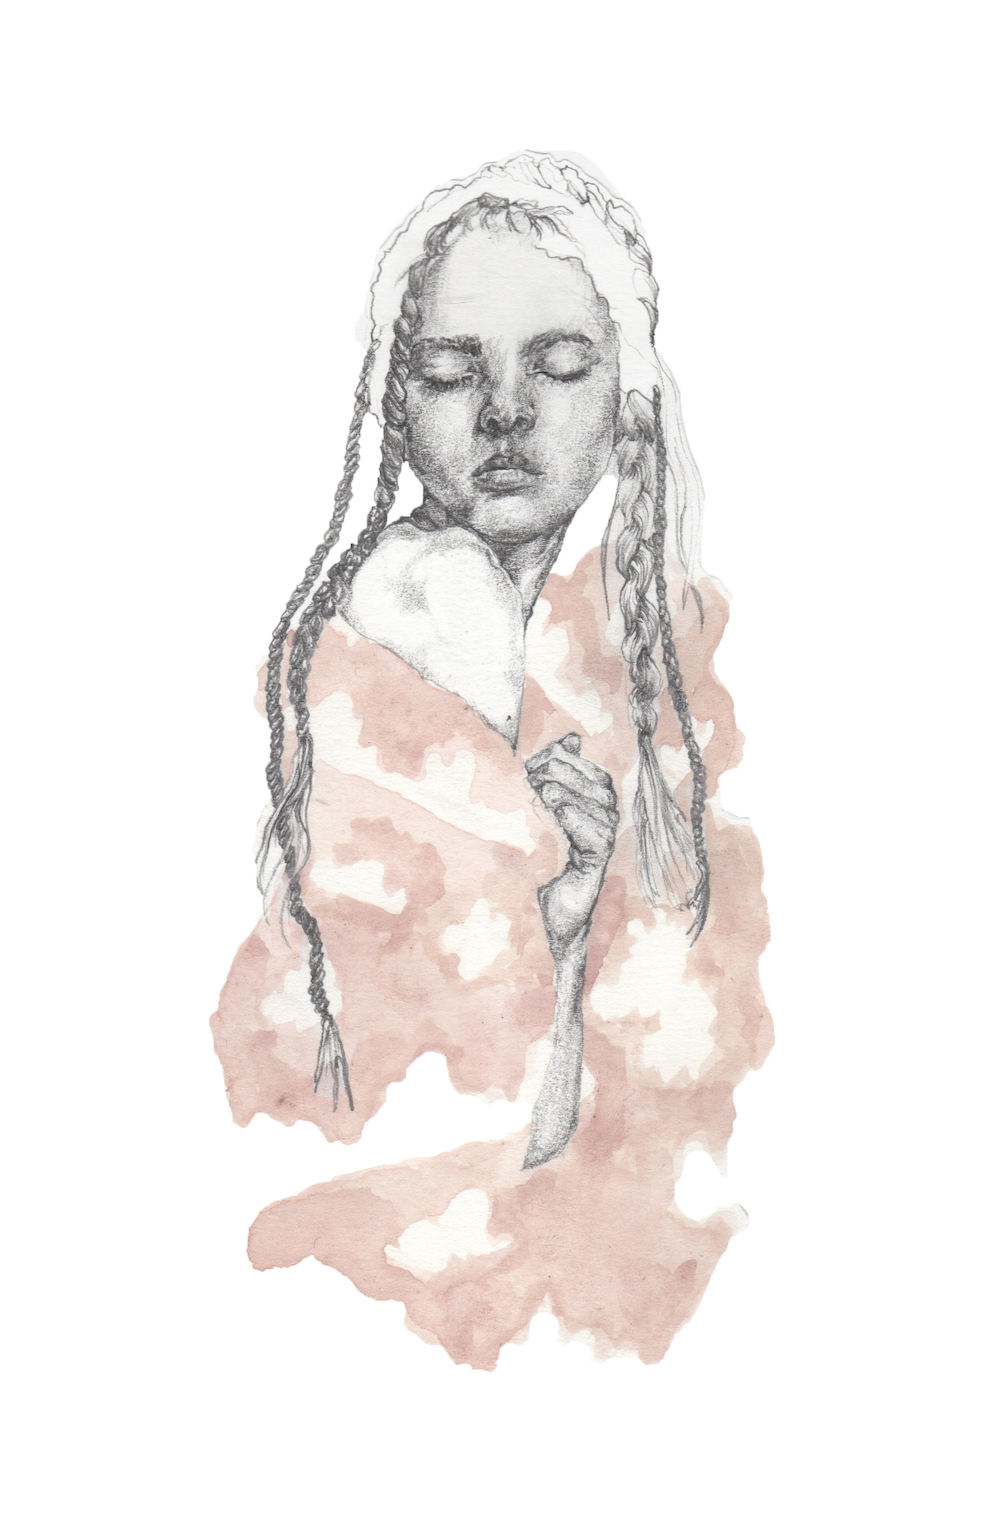 Pink Skies and Fluffy Clouds {Simone Rocha SS16} by Fashion Illustration graduate Nina Miles Hilpern.